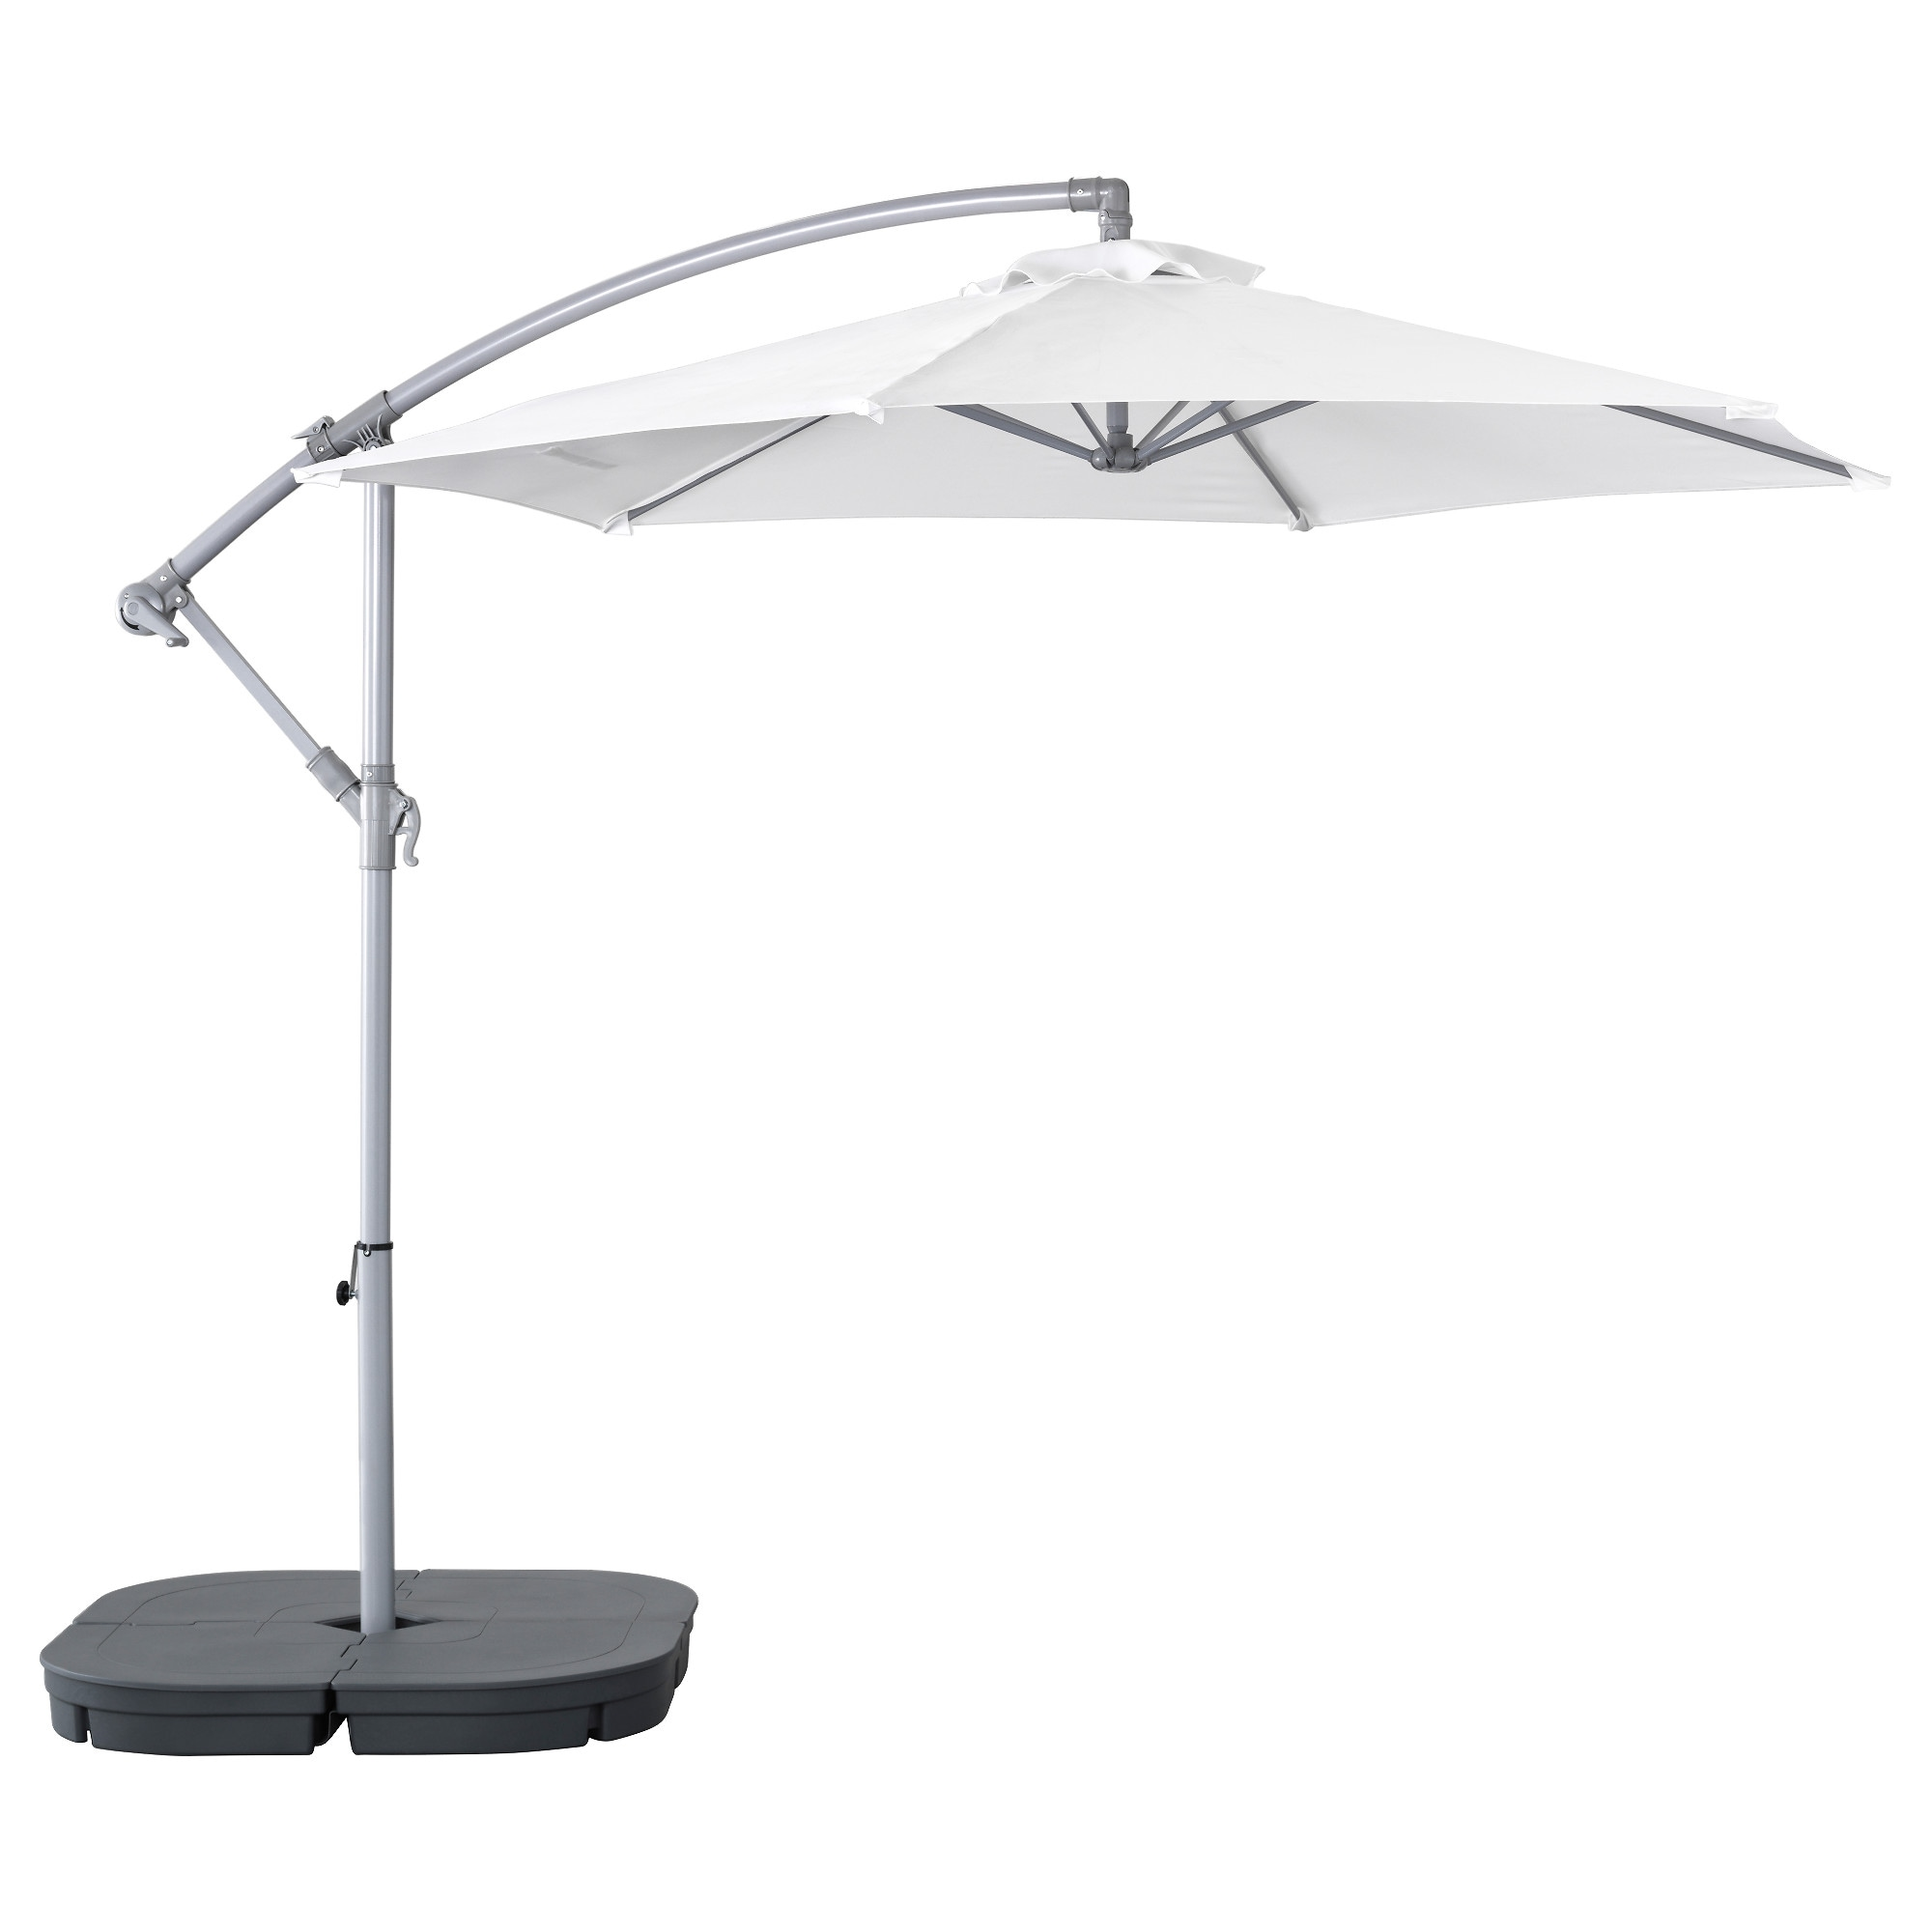 Amazing BAGGÖN / SVARTÖ Hanging Umbrella With Base, White, Dark Gray Height: 103 1